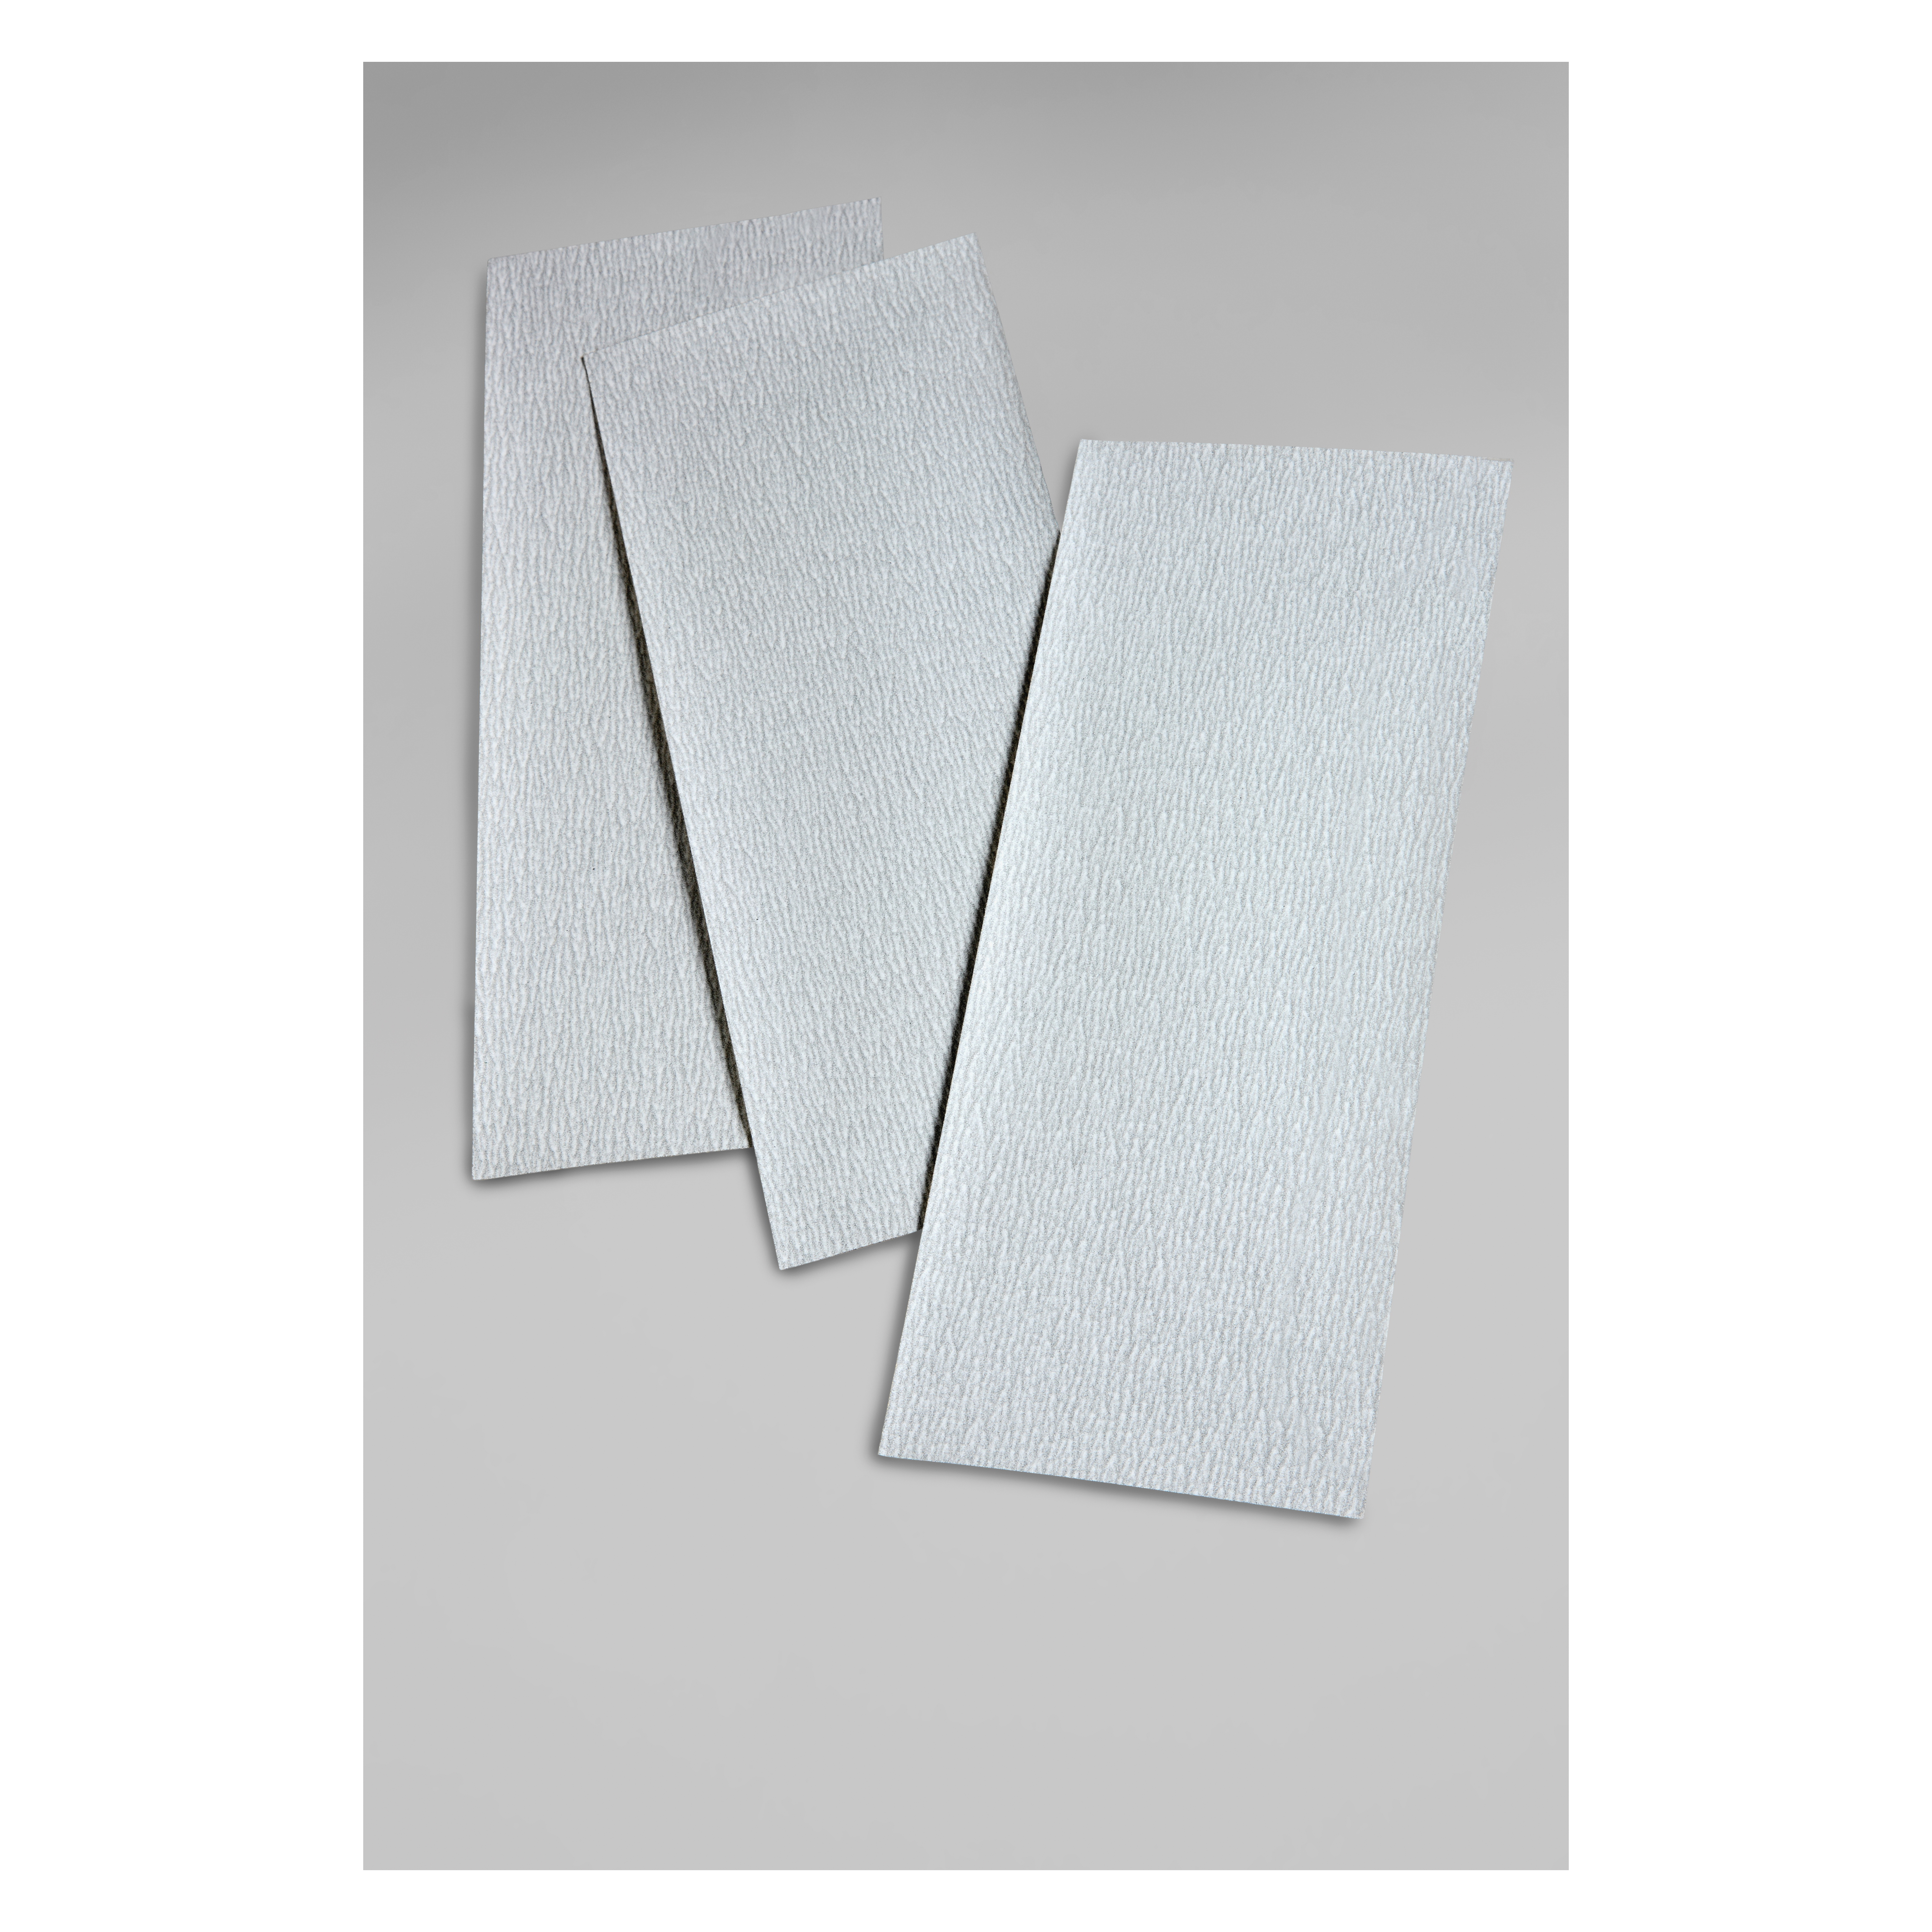 3M™ 051144-10272 Coated Abrasive Sheet, 9 in L x 3-2/3 in W, 320 Grit, Extra Fine Grade, Silicon Carbide Abrasive, Paper Backing